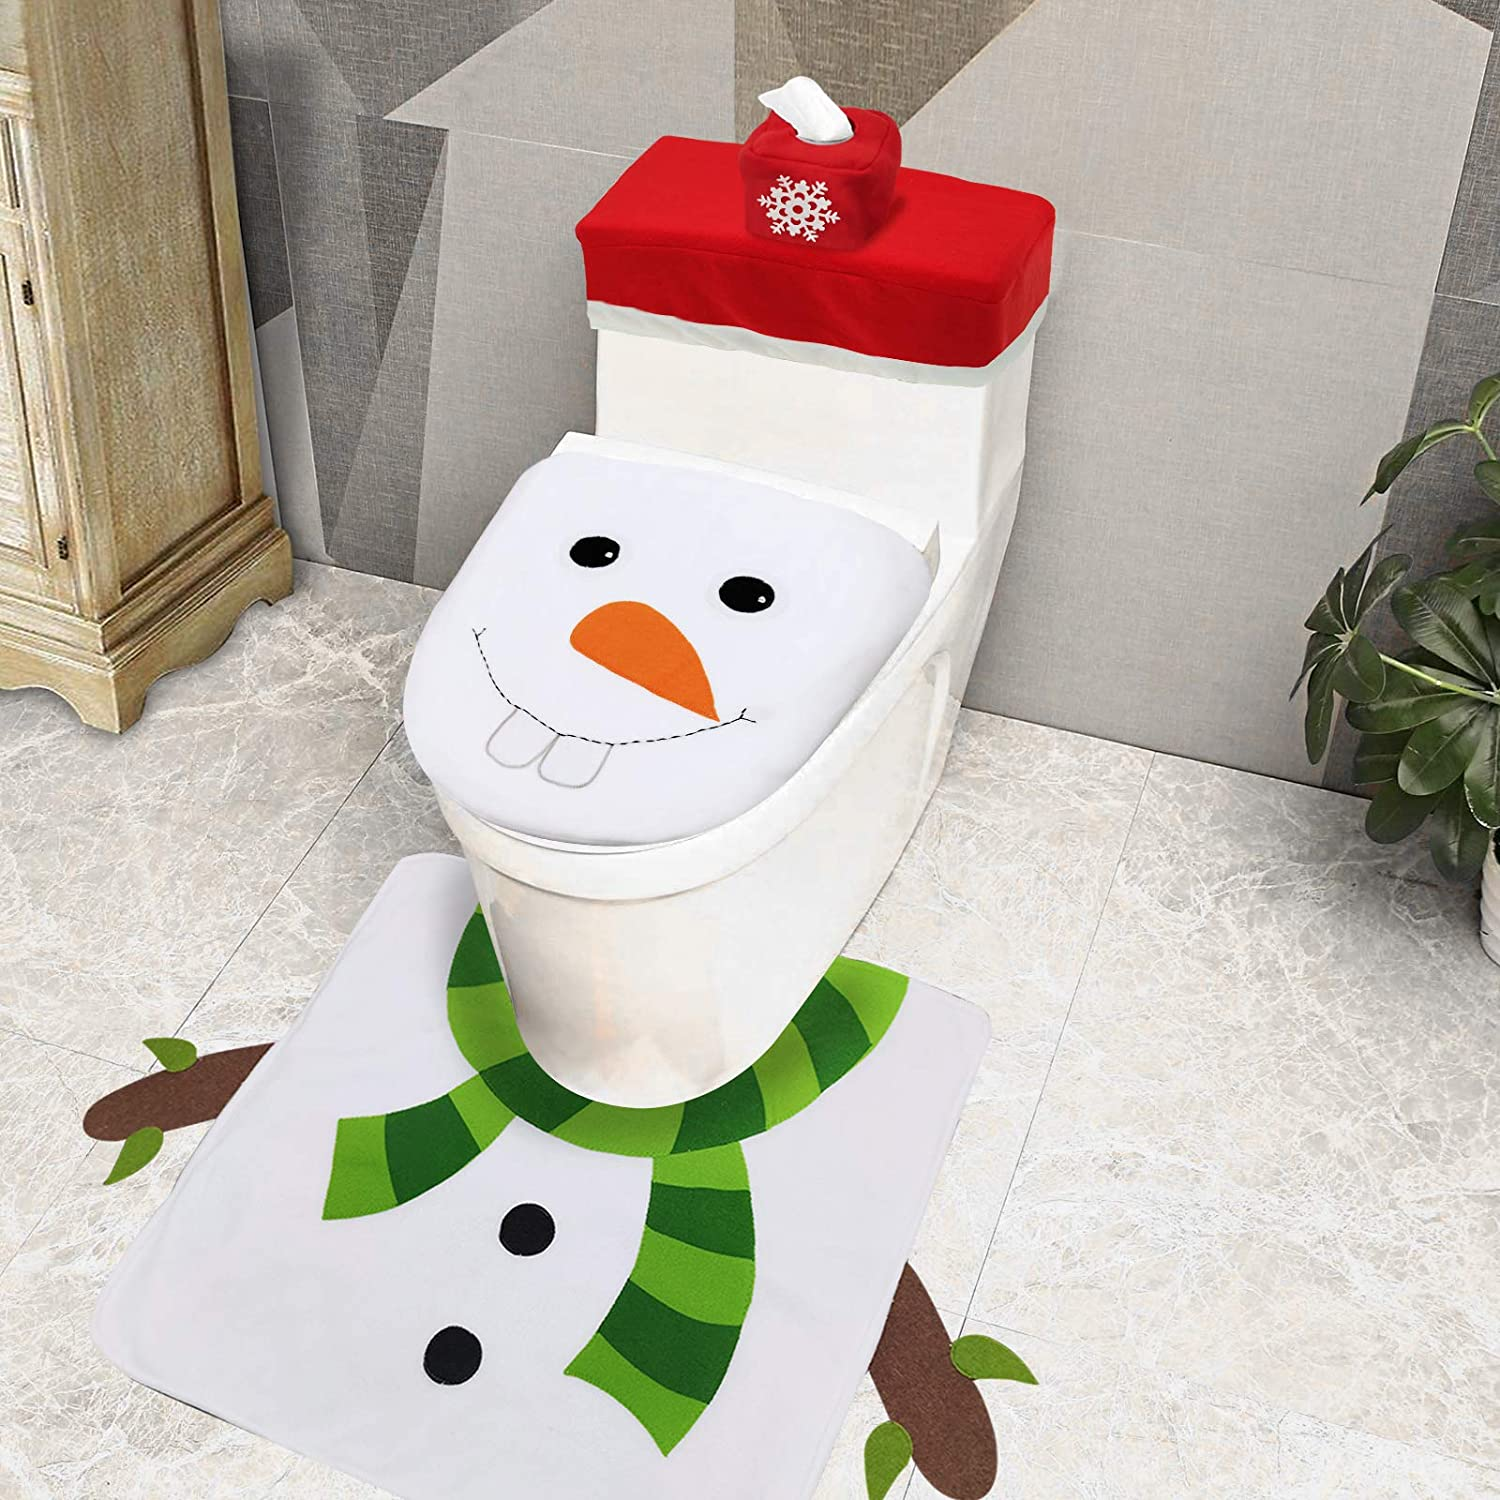 TURNMEON 4 Pieces Christmas 3D Snowman Toilet Seat Cover Christmas Decor Double Sided Funny Christmas Toilet Seat Lid Cover and Thicken Rug Set Christmas Bathroom Decor Home Indoor Xmas Decor White